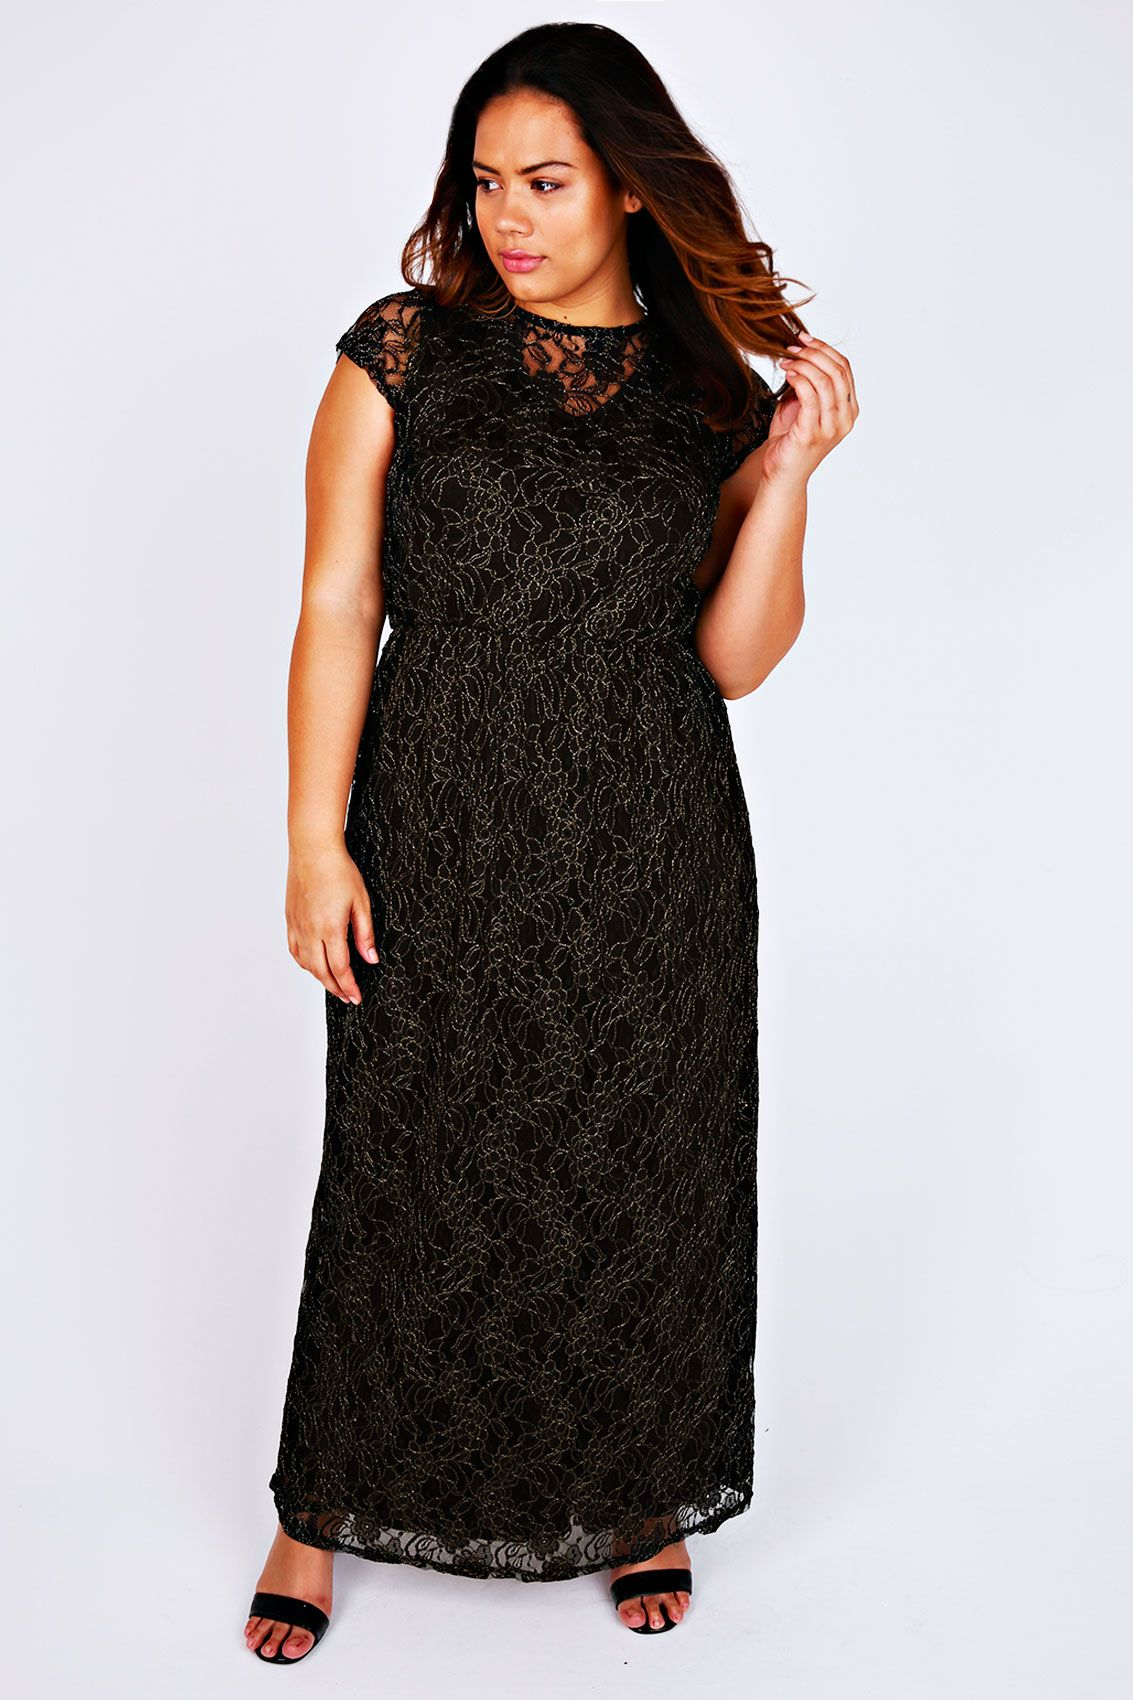 Black u gold maxi dress with floral lace overlay modas pinterest